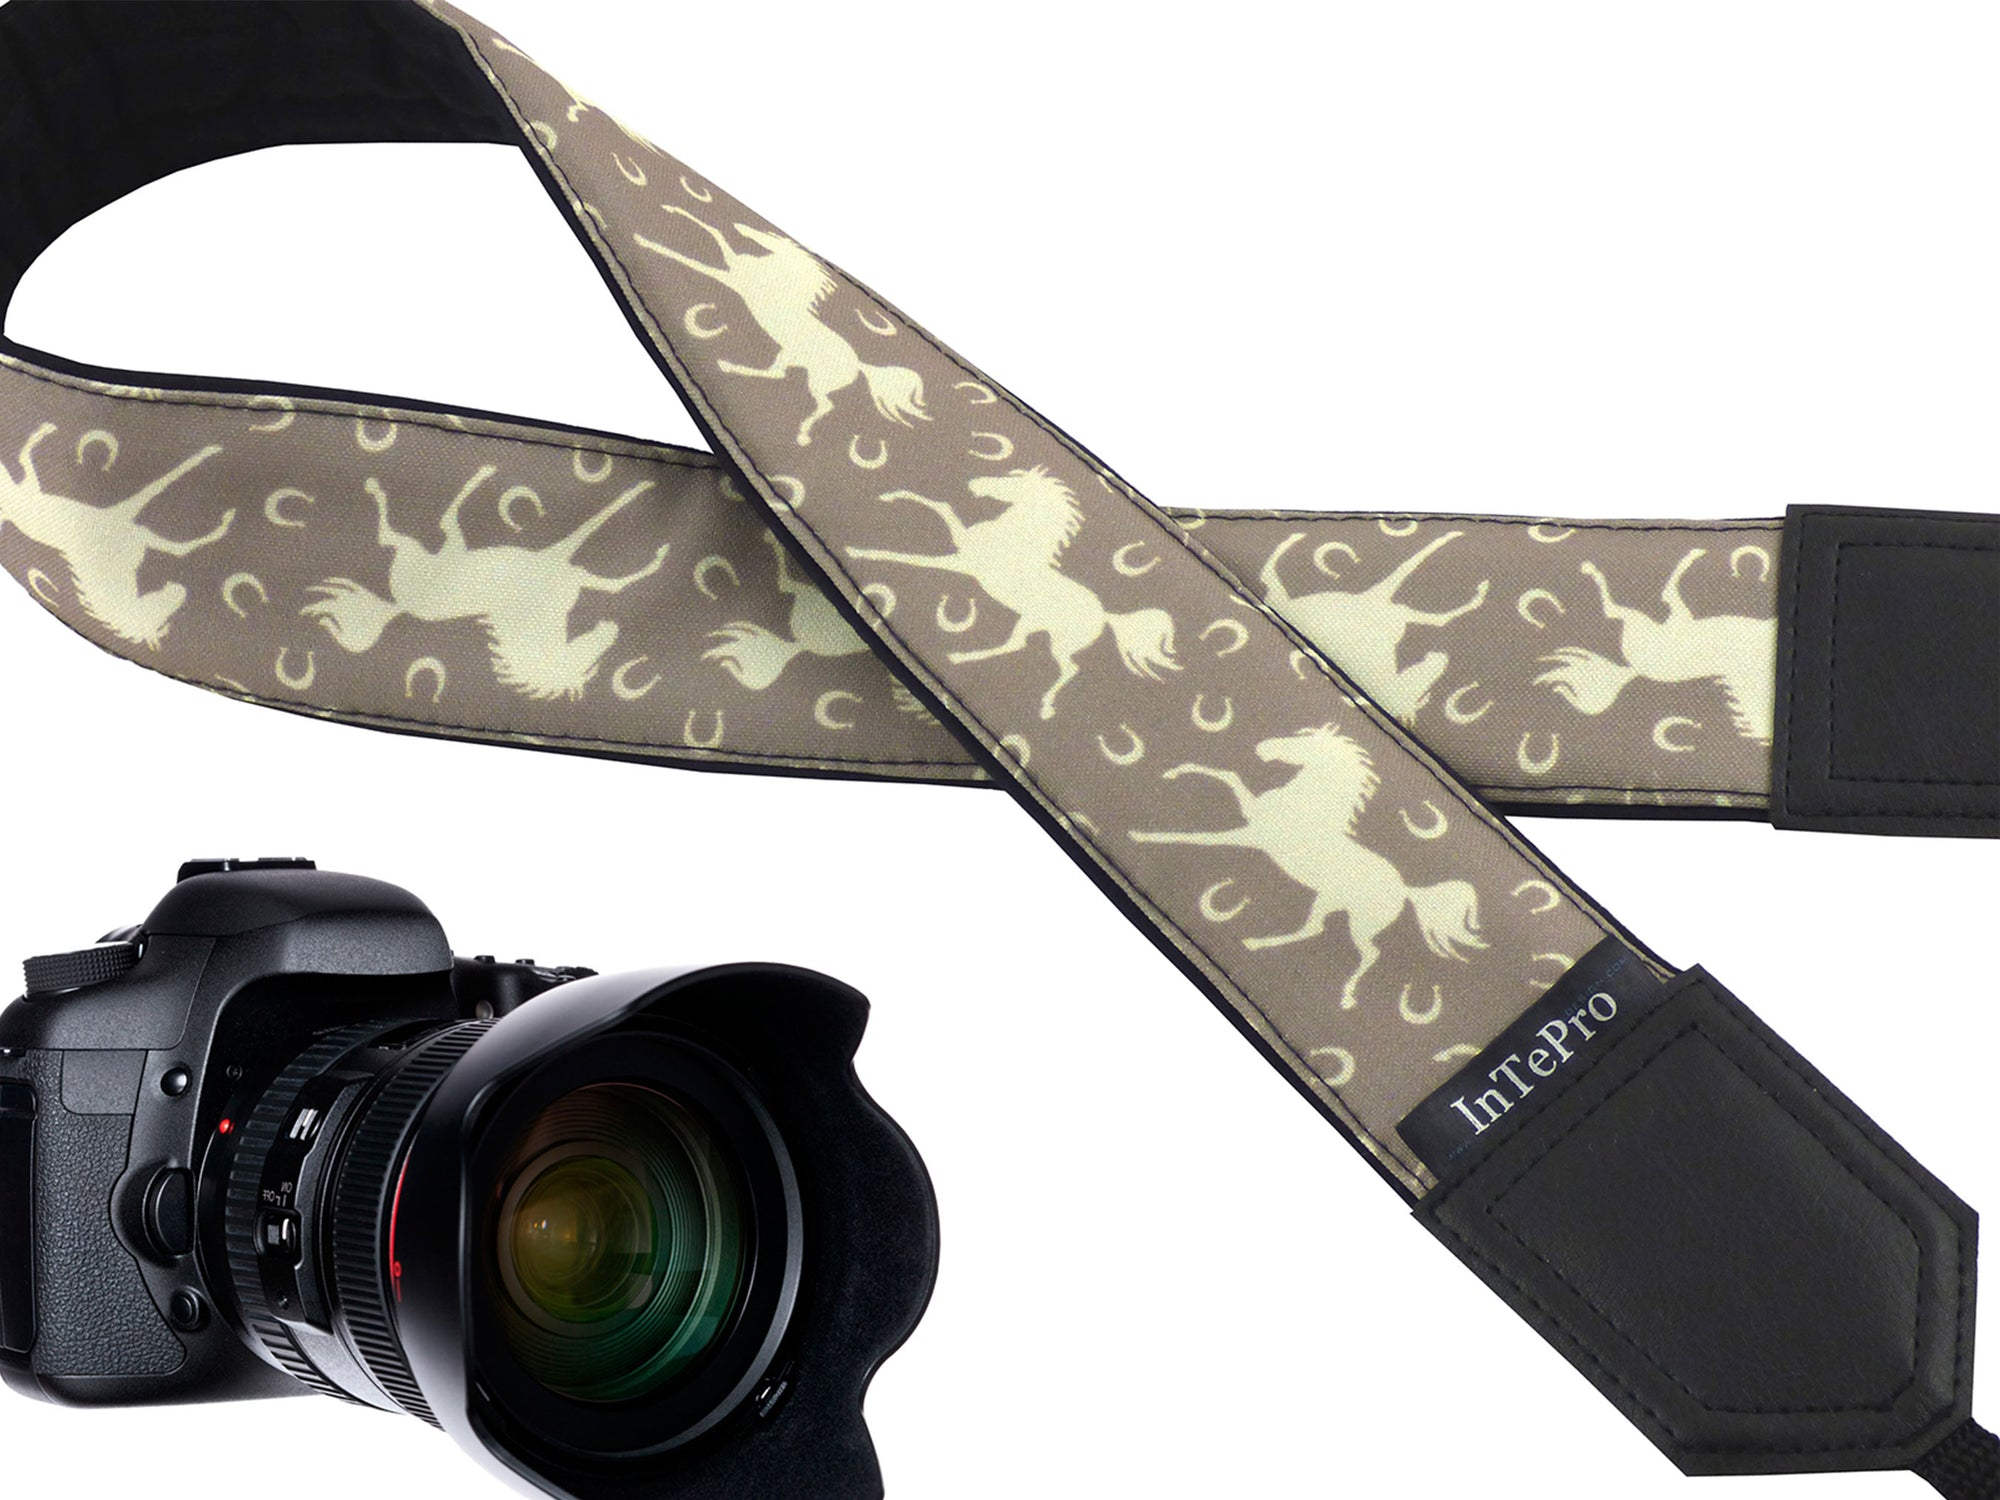 InTePro Personalized camera strap with Horses and horseshoes design. Best gift accessory for animal lovers. With pocket and extra length.